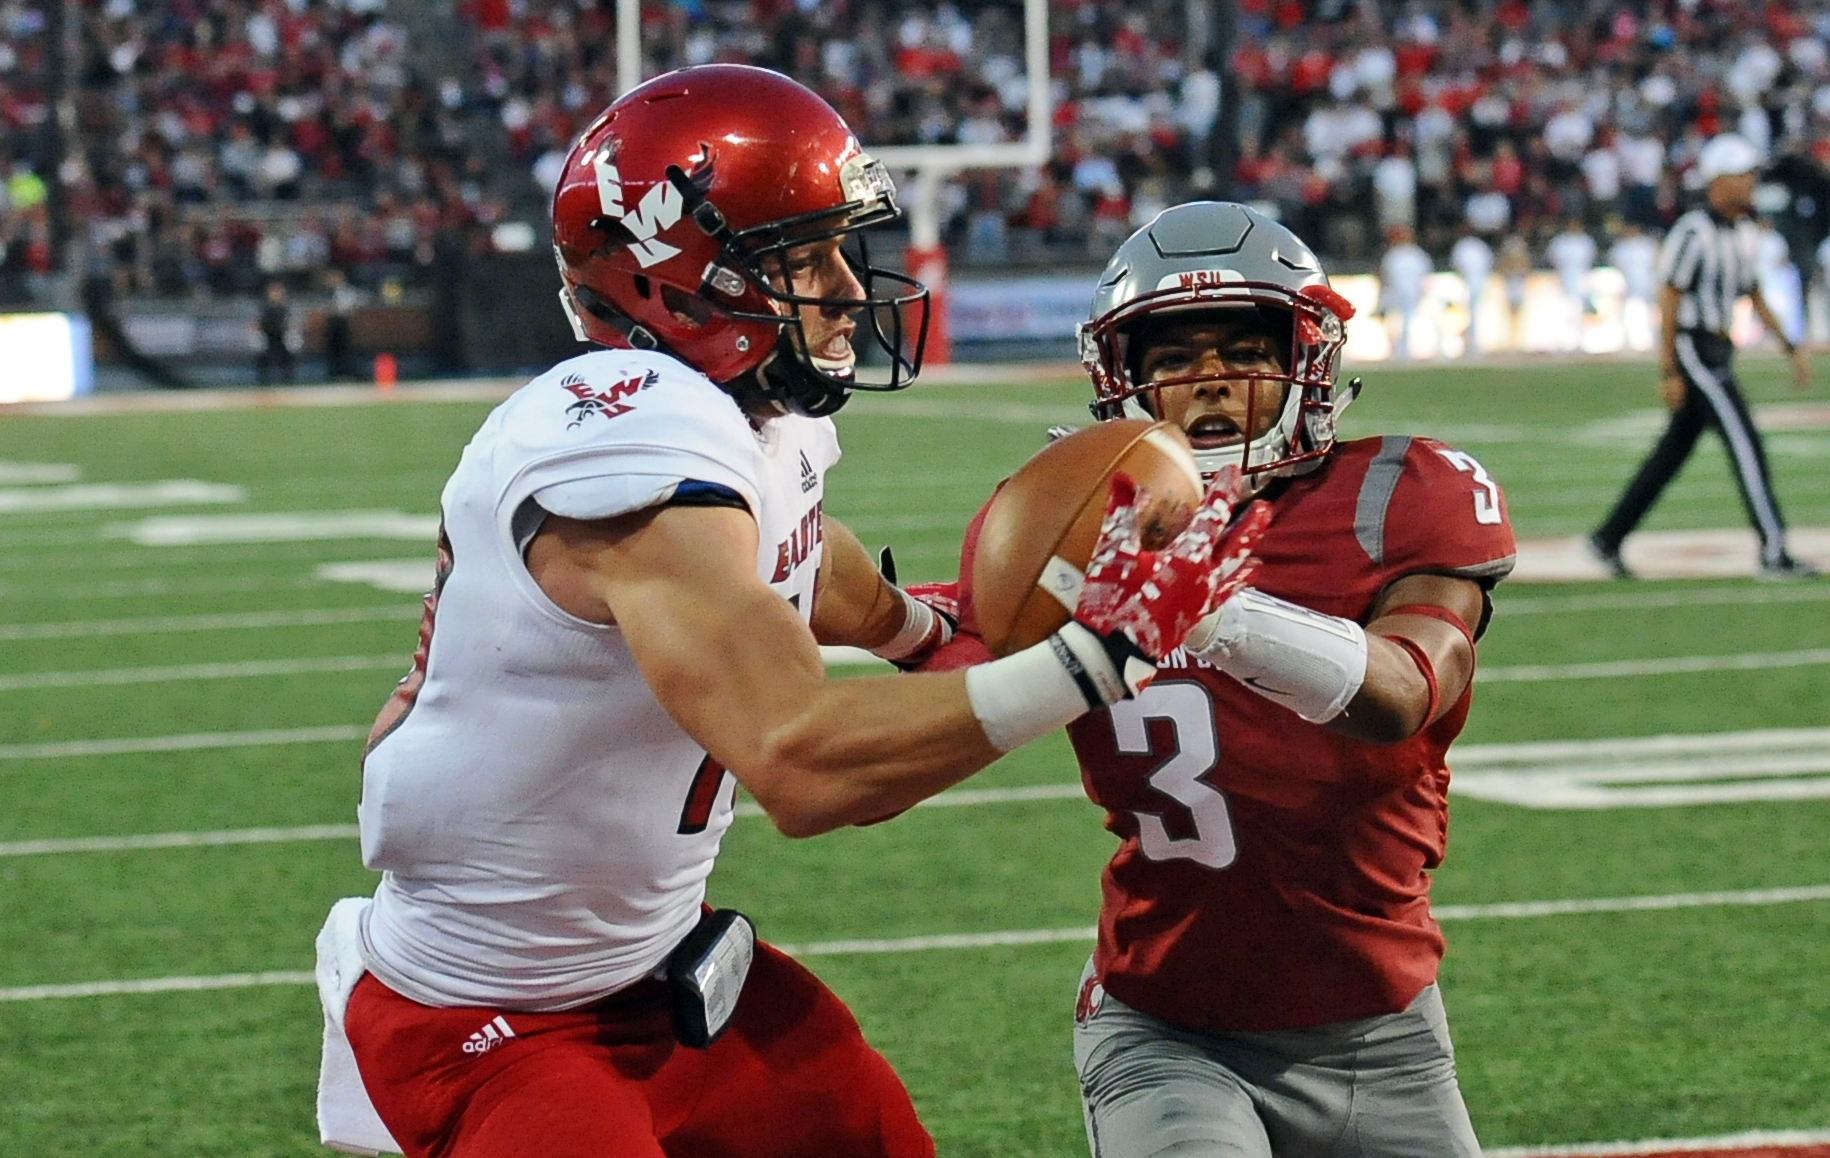 Sep 3, 2016; Pullman, WA, USA; Eastern Washington Eagles wide receiver Cooper Kupp (10) makes a touchdown catch against Washington State Cougars defensive lineman Samson Ebukam (3) during the second half at Martin Stadium. The Eagles won 45-42. Mandatory Credit: James Snook-USA TODAY Sports